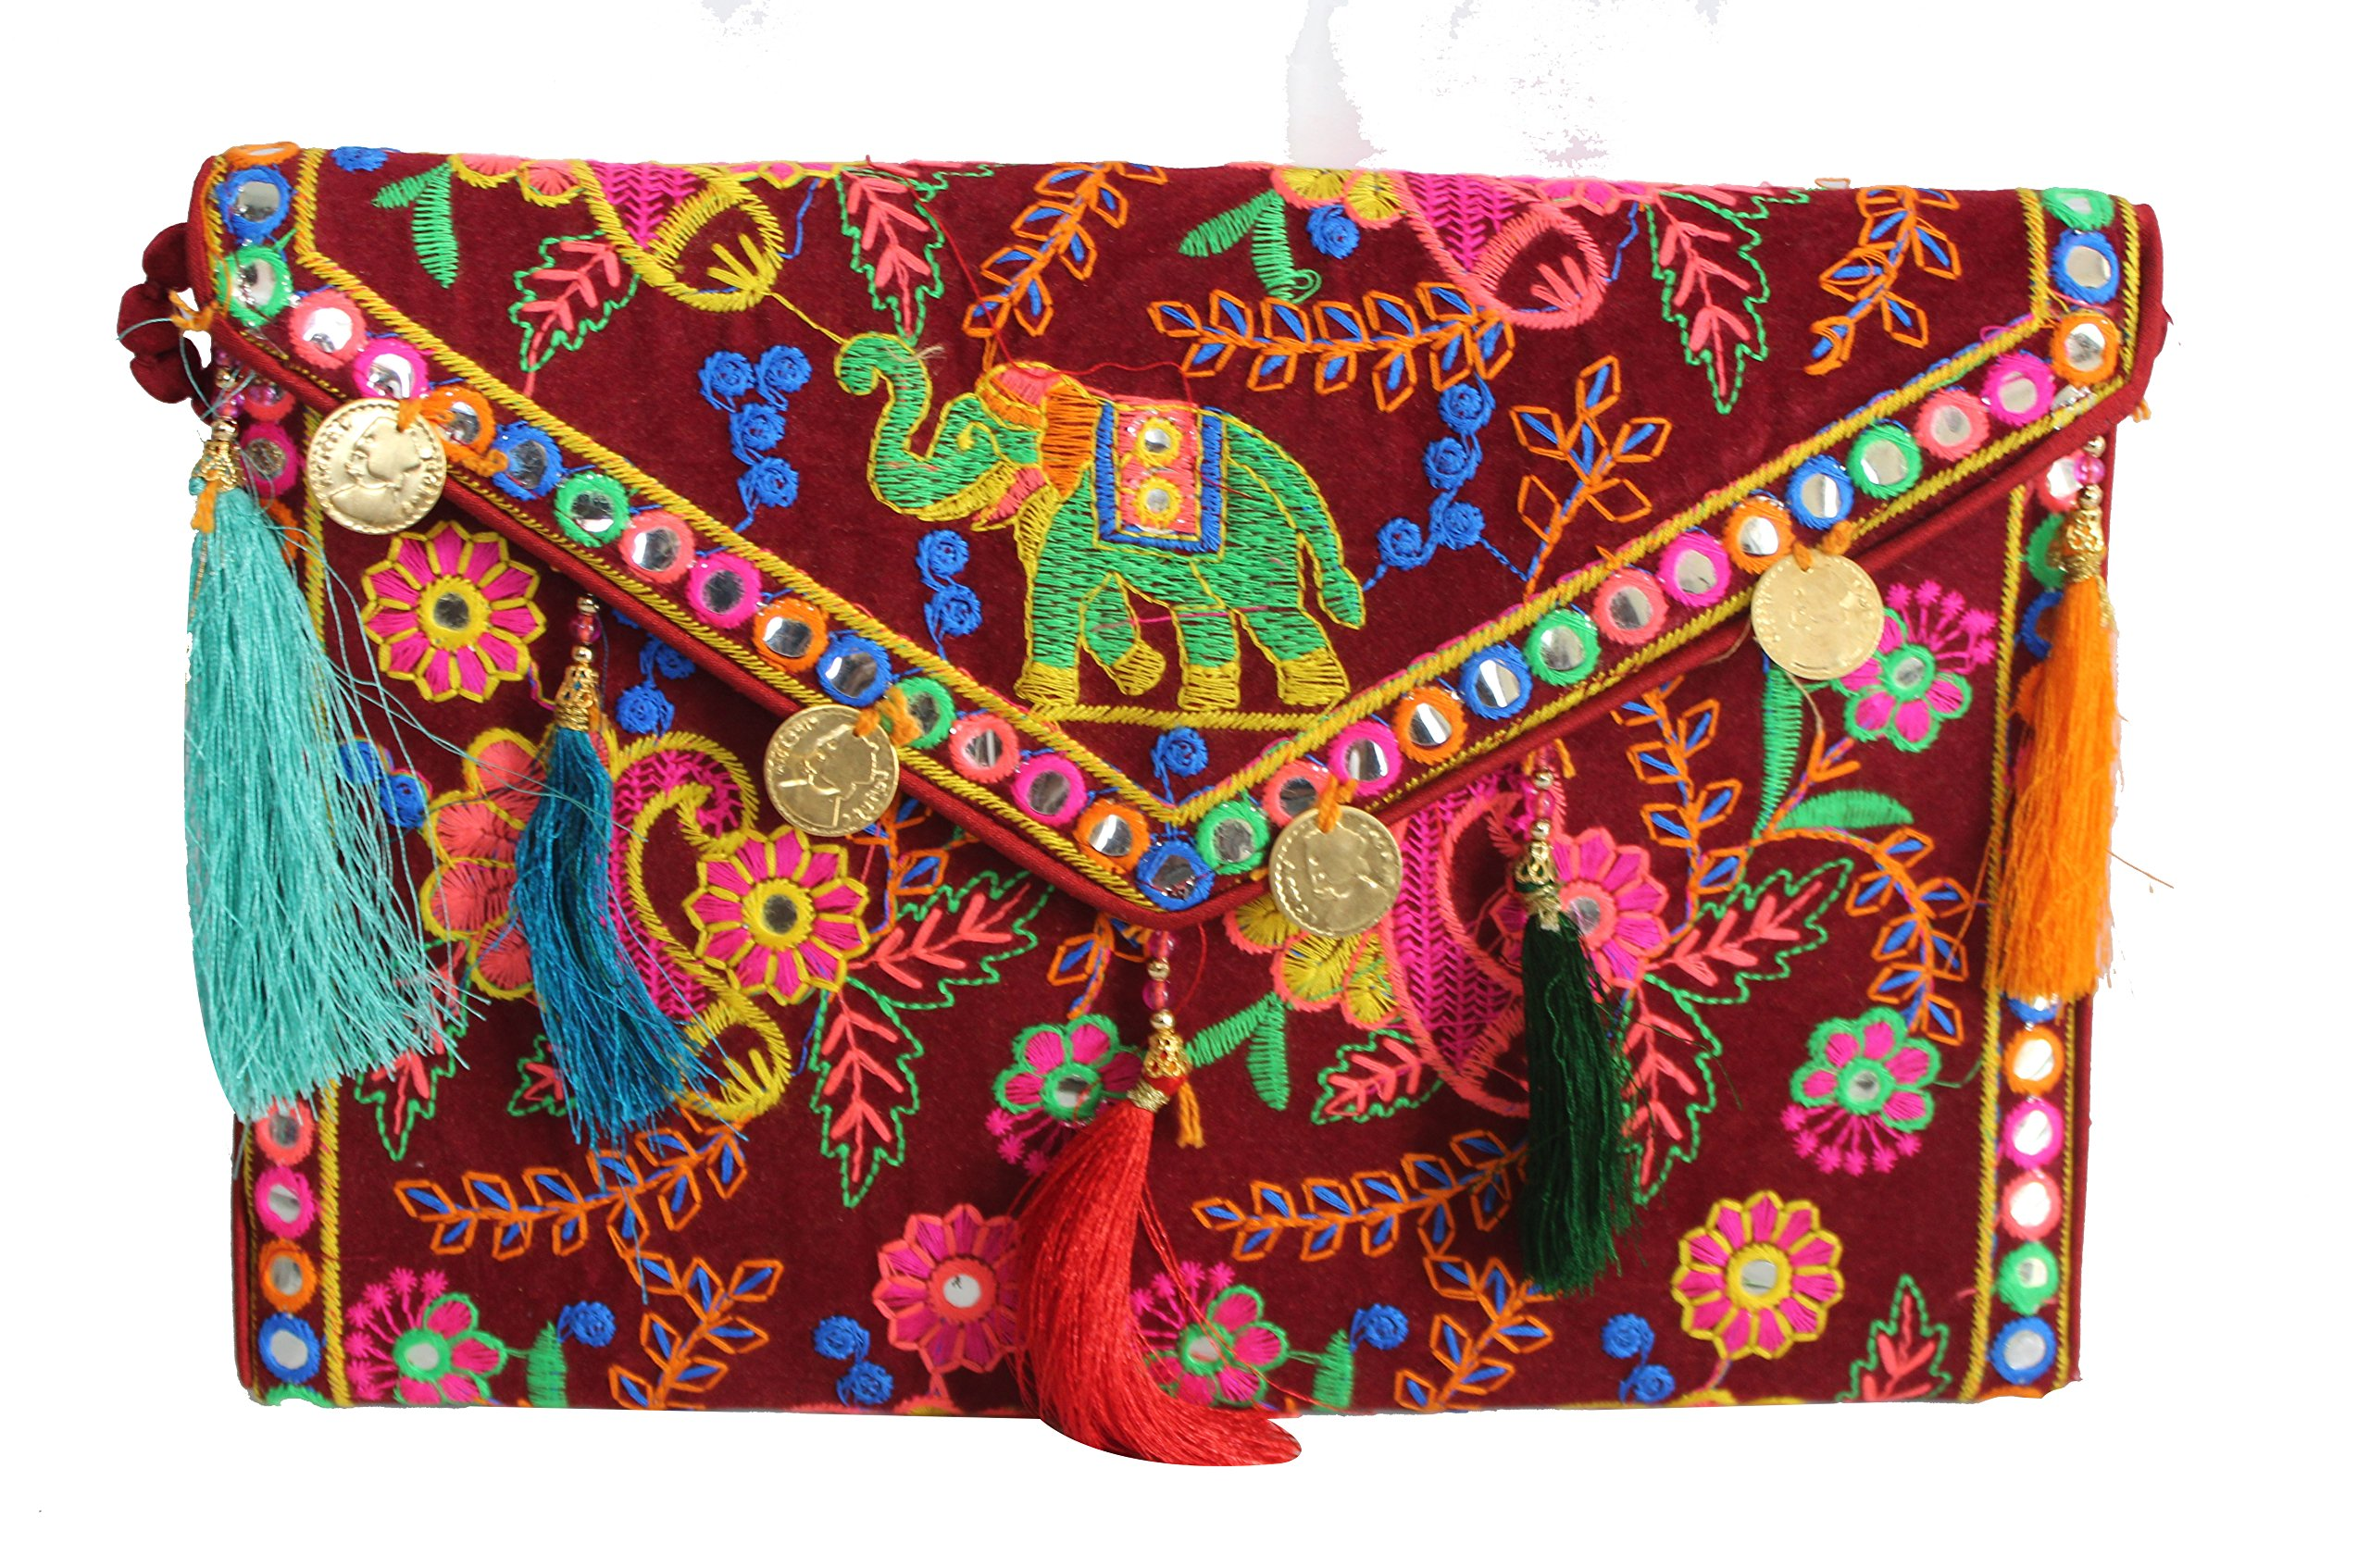 Hippie Handmade Clutch Purse for women Cotton Elephant Embroidery coin work Ethnic Vintage bohemian Tribal Banjara Maroon Sling Bags